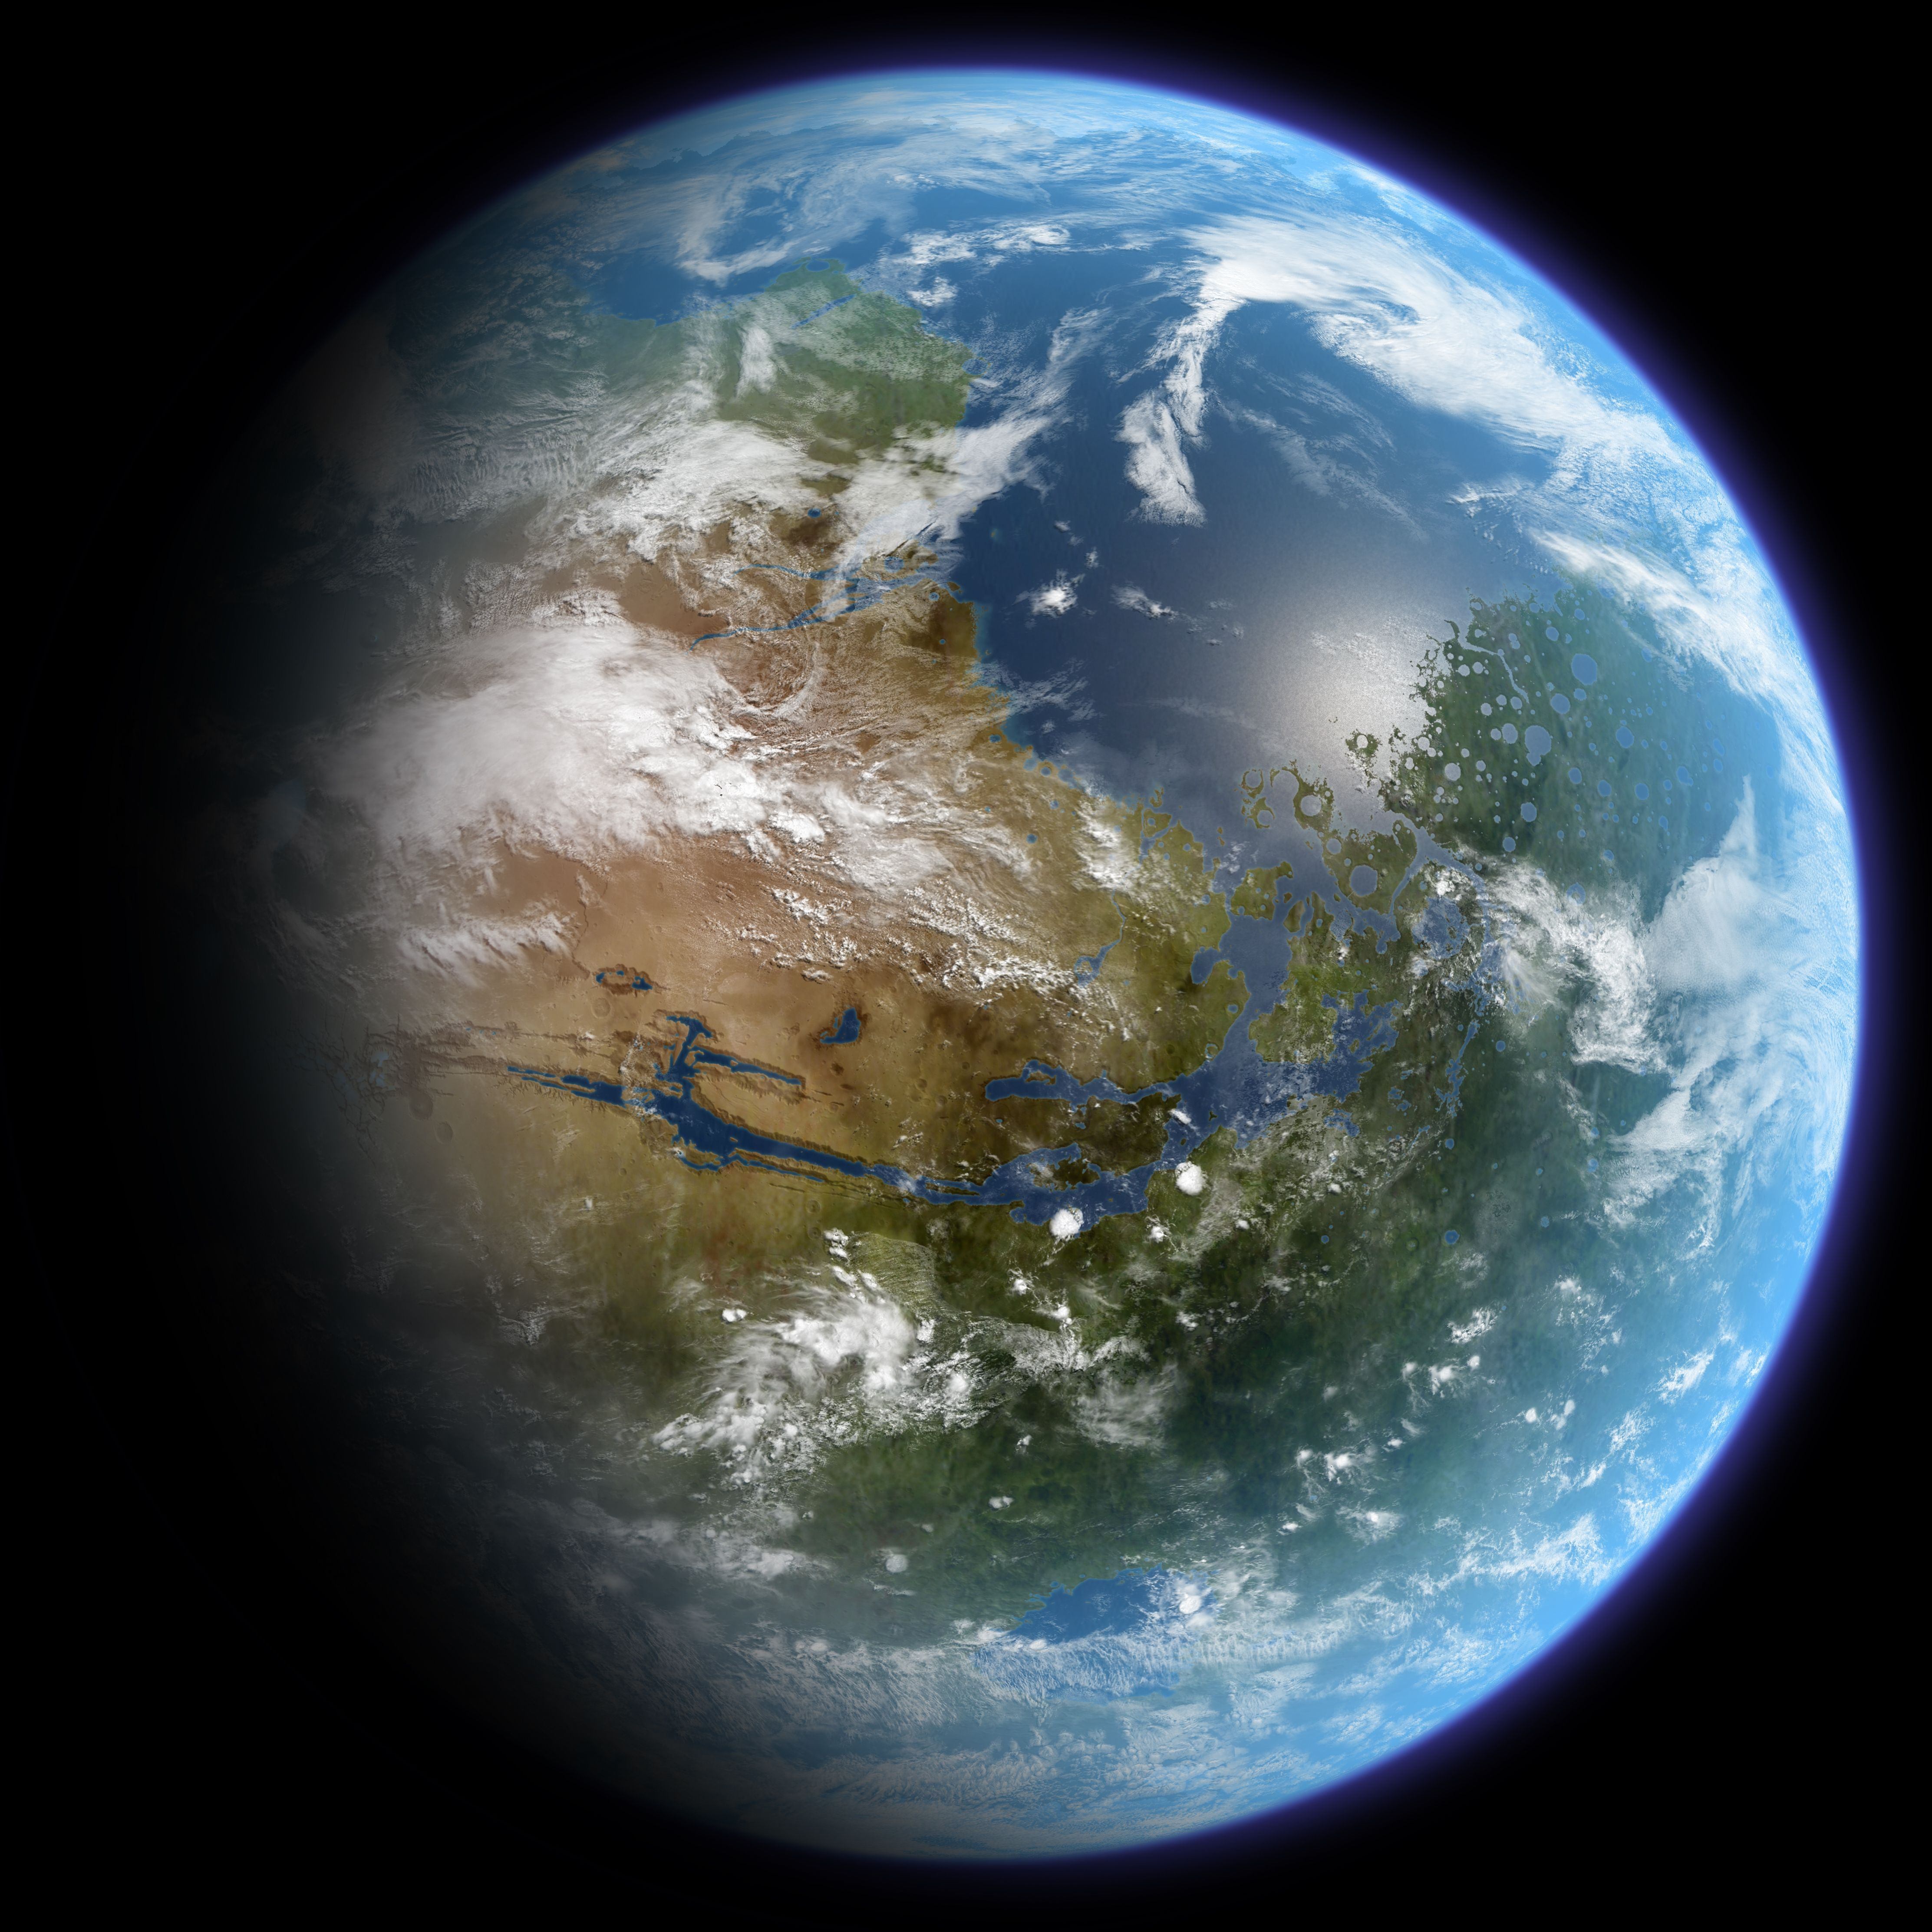 Destiny Of Destruction A Short Story By Cam Mars Atmosphere Planets Earth From Space